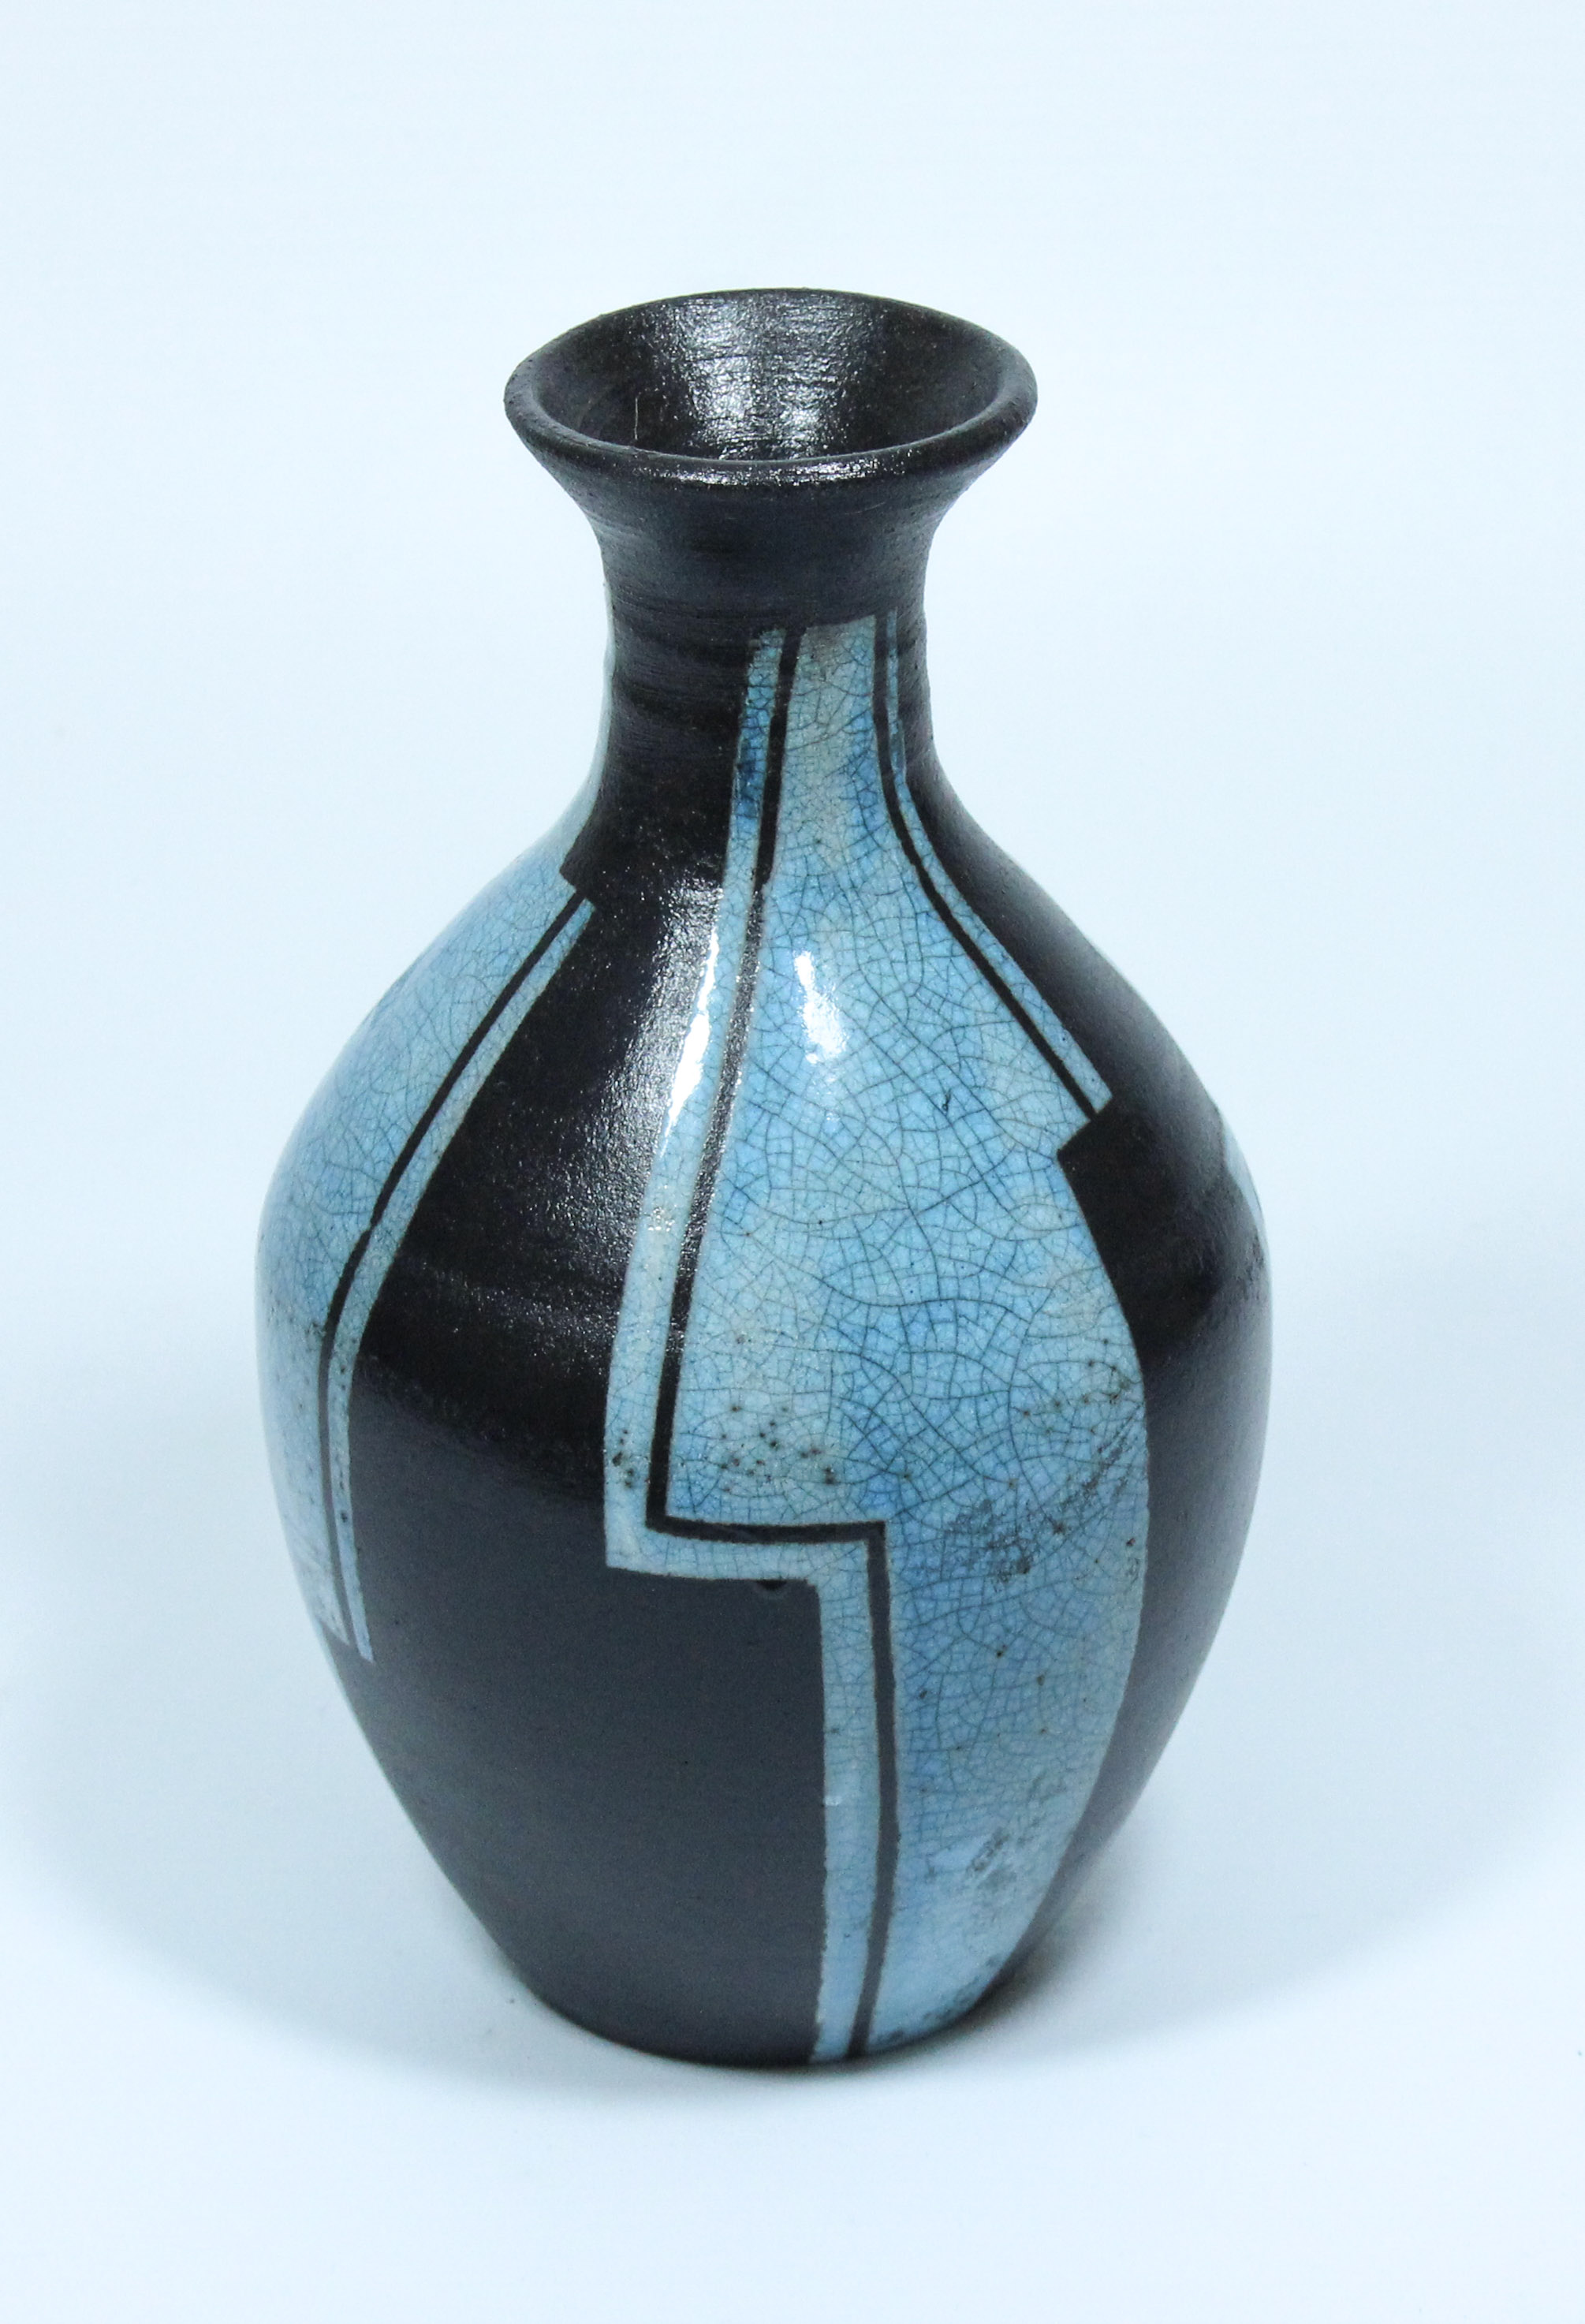 Peter White Large Raku 2 Woburn Sands Clay The Great Pottery Throw Down